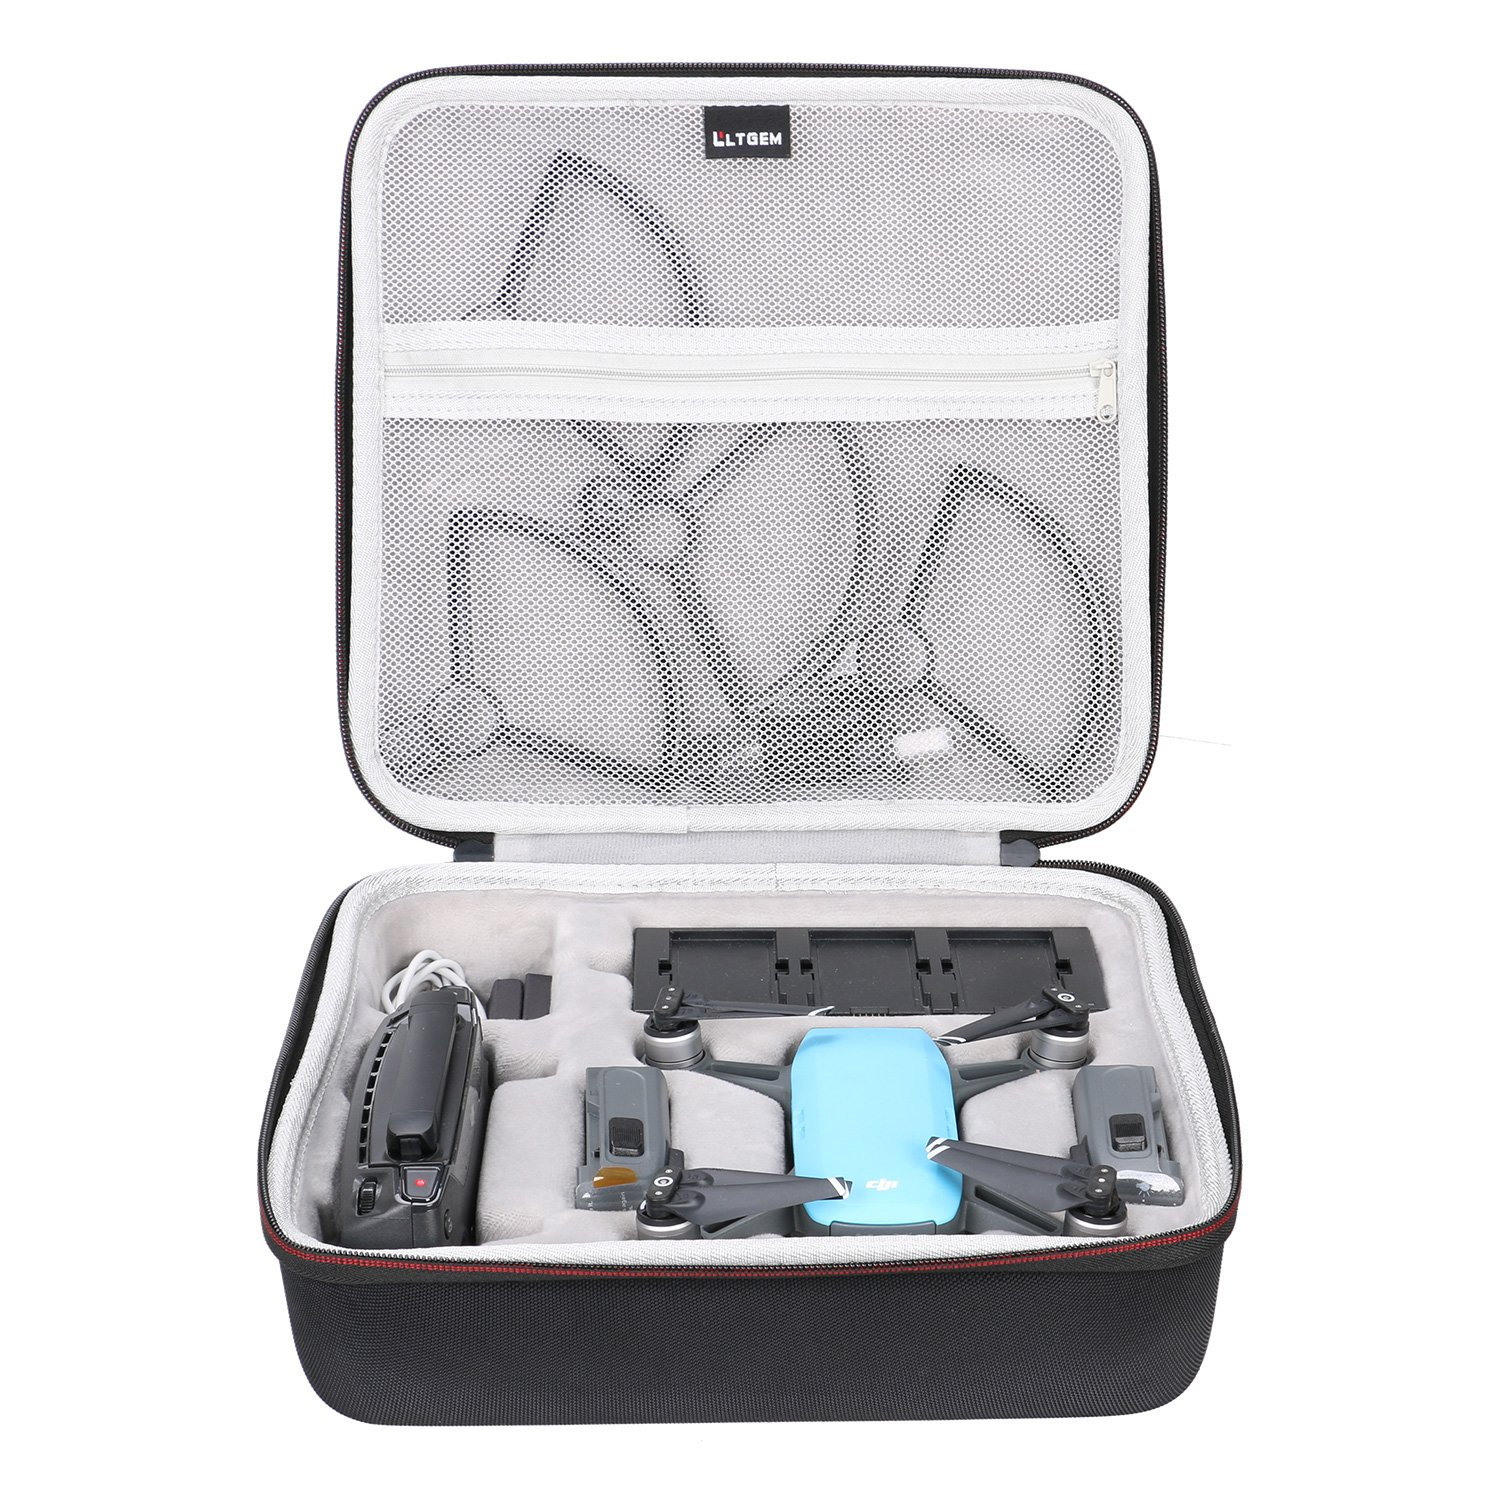 LTGEM Case for DJI Spark Drone Fits 4 Drone Batteries Propeller Guard Battery Charger Remote Controller and Other Accessories Black with Mesh Pocket